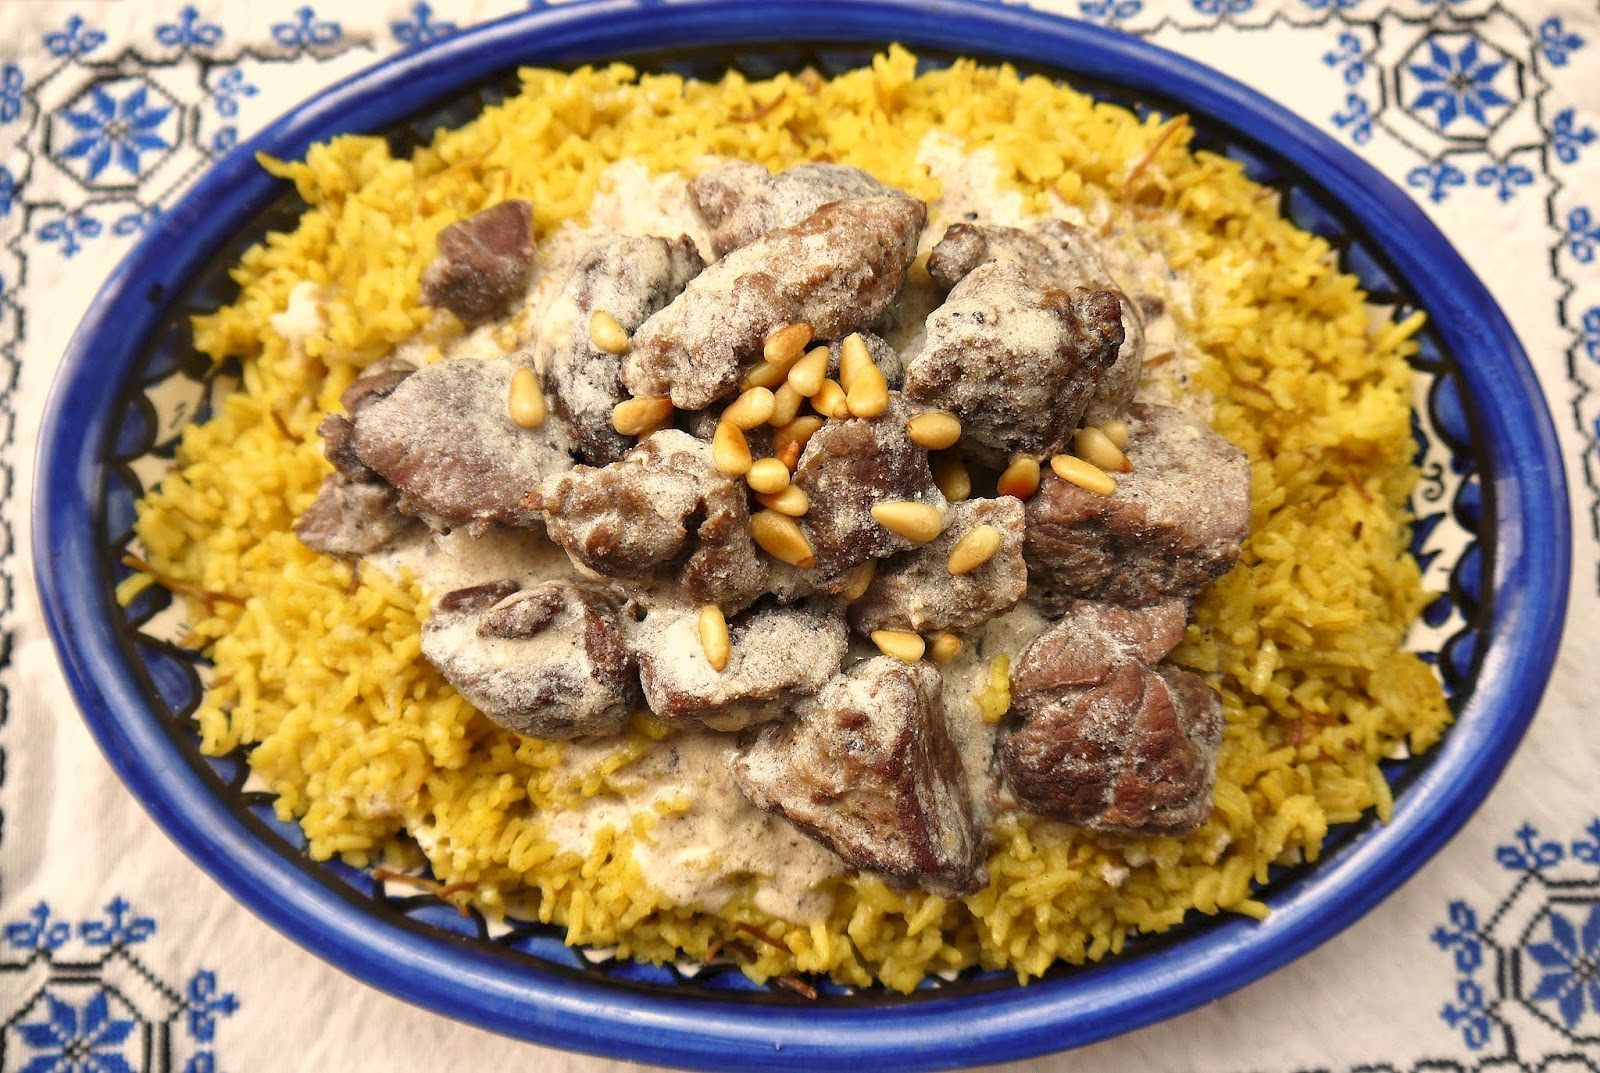 Bint rhoda 39 s kitchen lamb in yogurt sauce or mansaf for for Arabic cuisine names